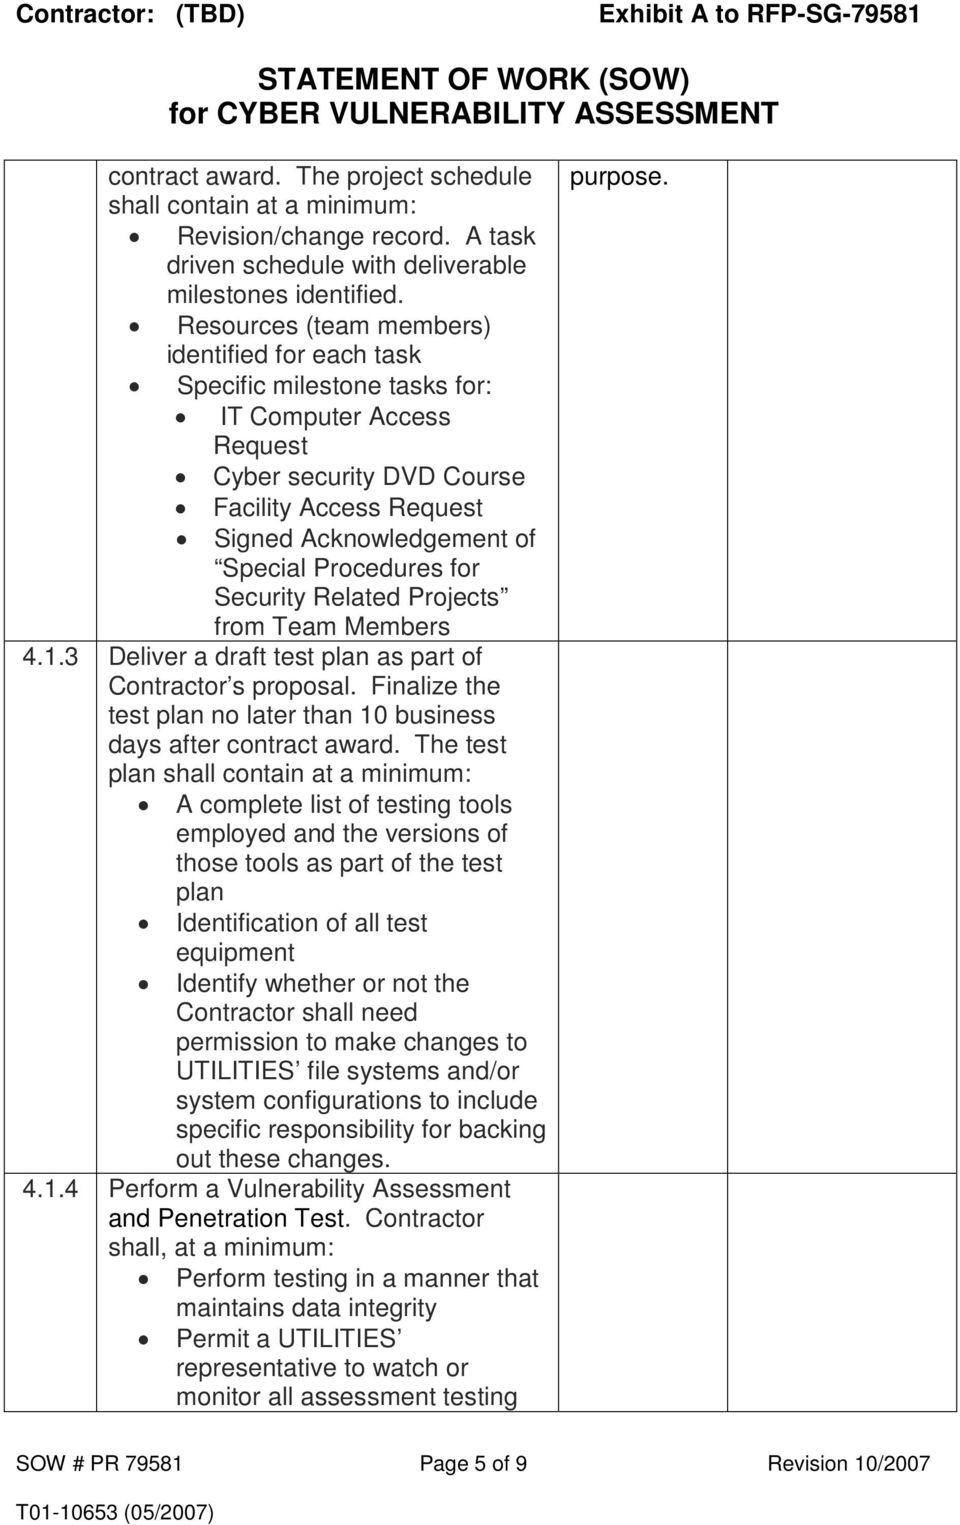 statement of work sow for cyber vulnerability assessment pdf